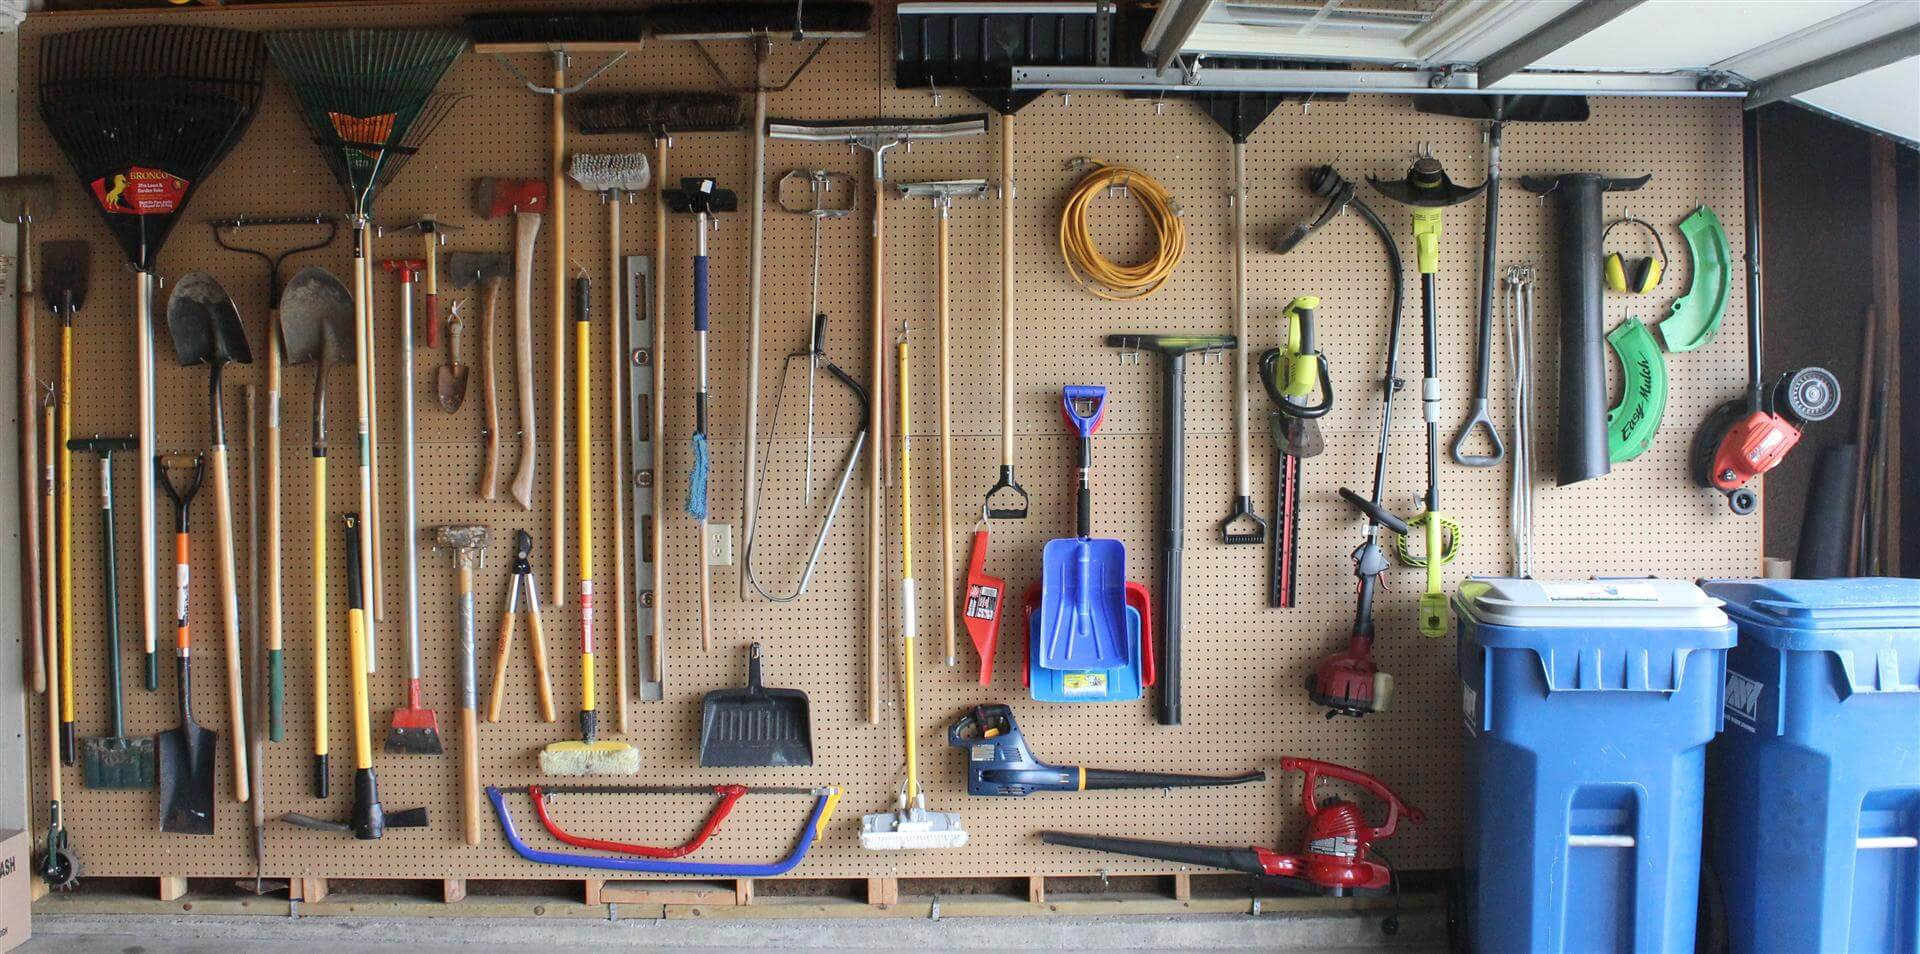 bo garage need a space for tools ideas - Garage on Pinterest